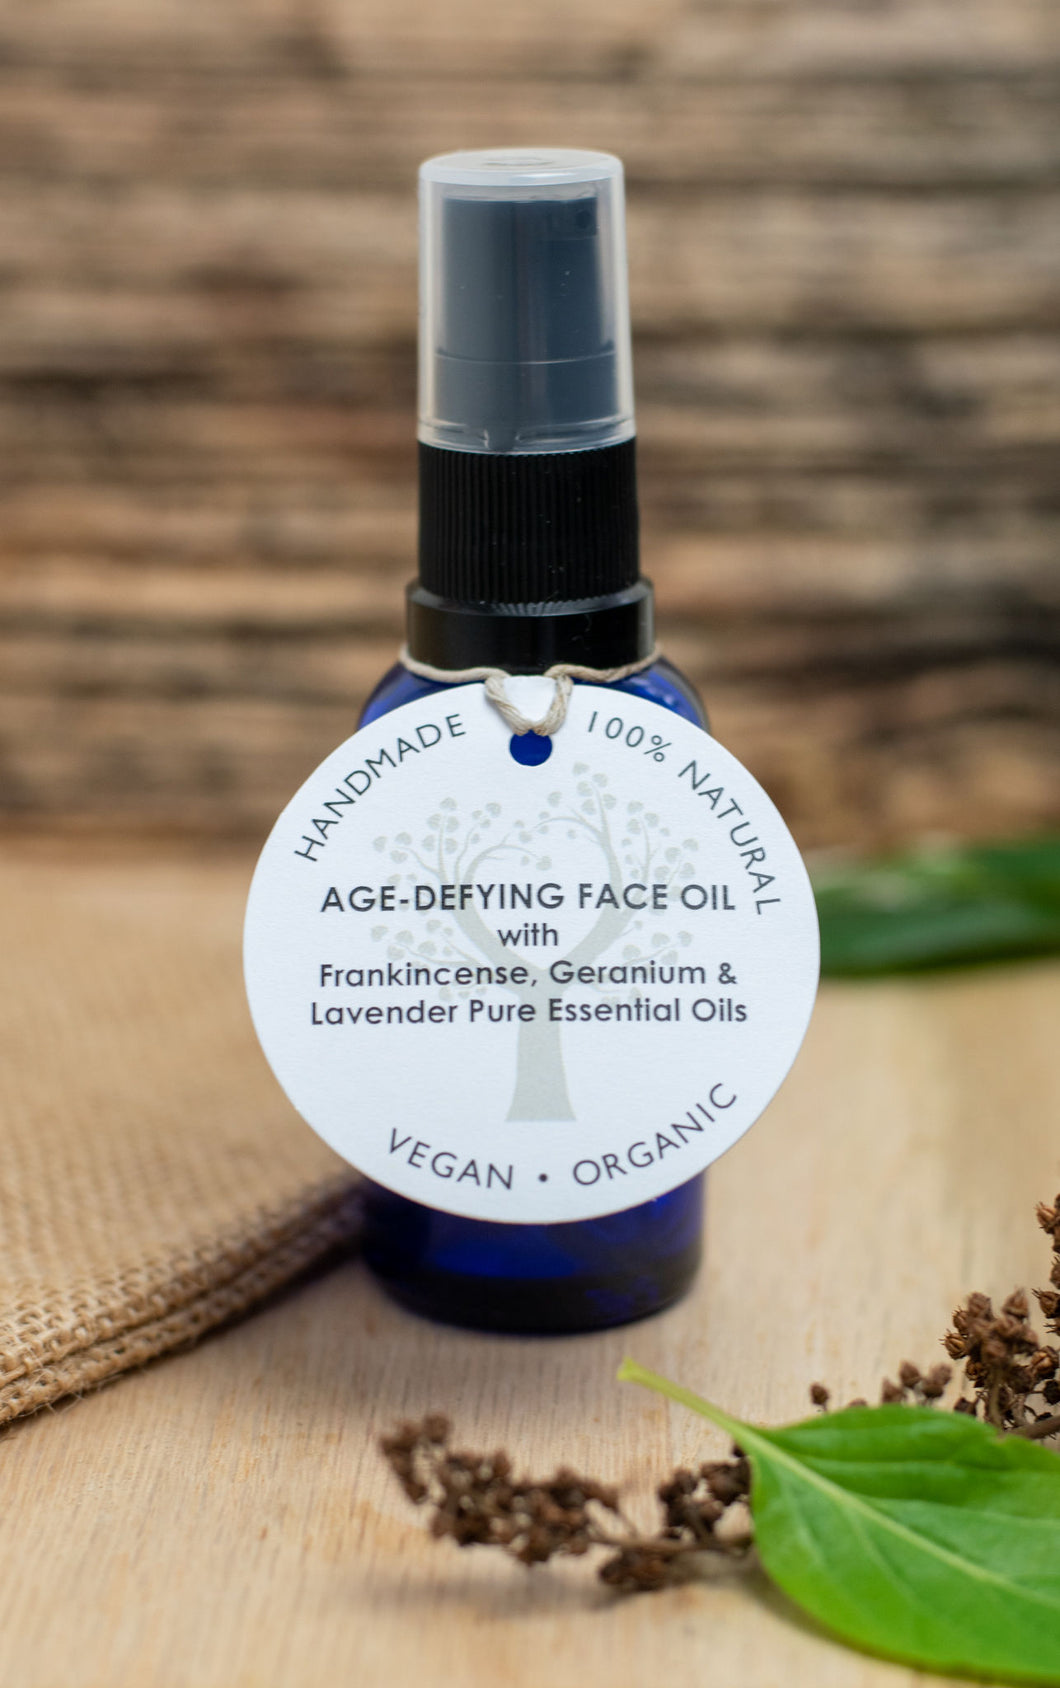 Age-Defying Face Oil with Frankincense, Geranium & Lavender Essential Oil (30ml)